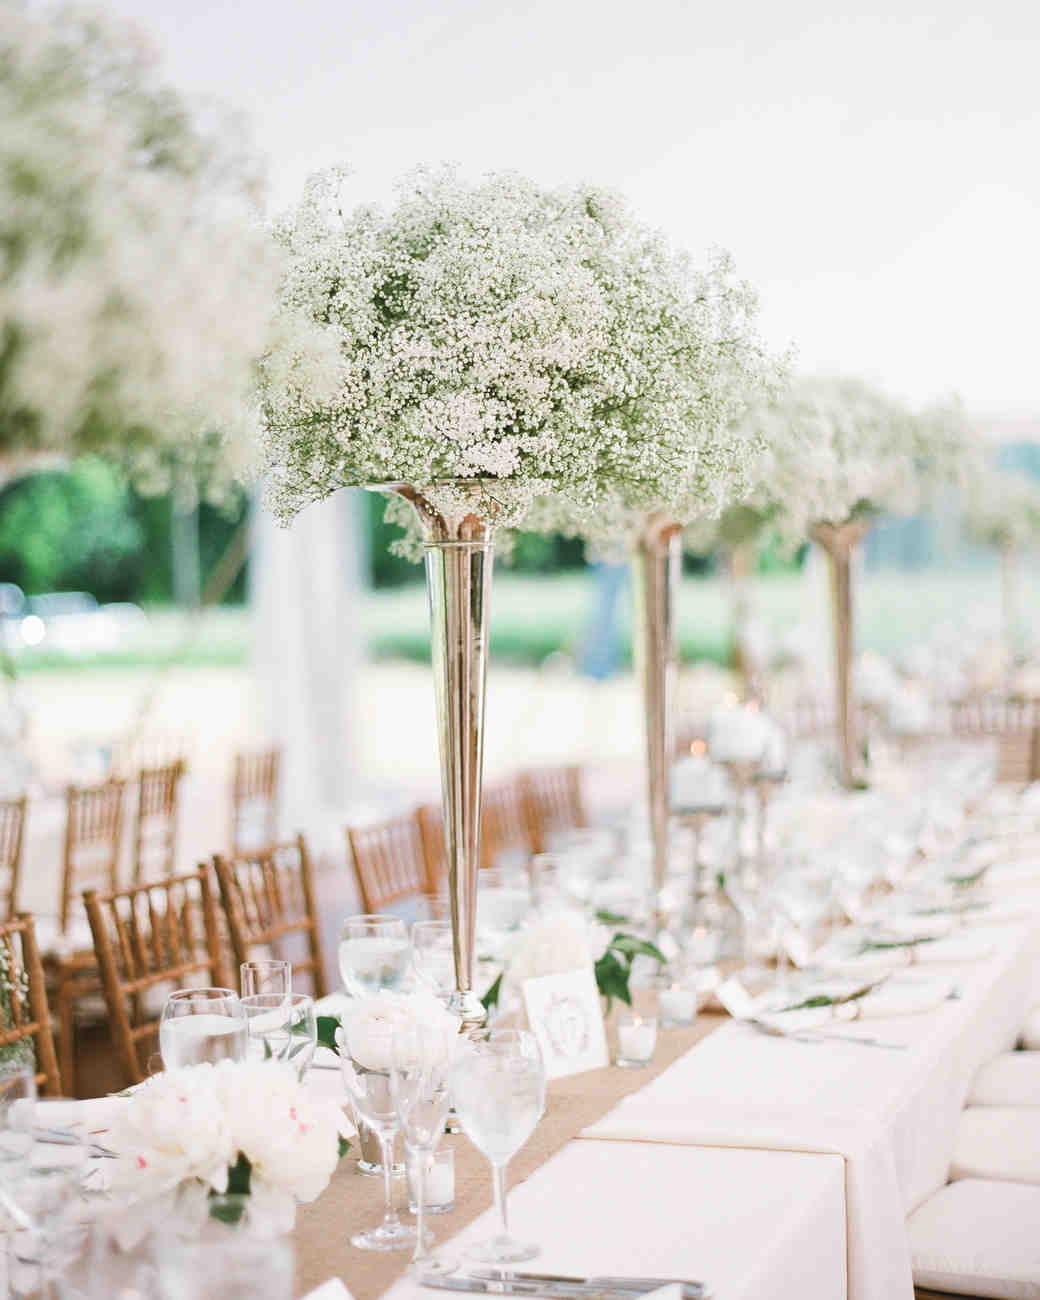 Wedding Flower Arrangements: Affordable Wedding Centerpieces That Don't Look Cheap